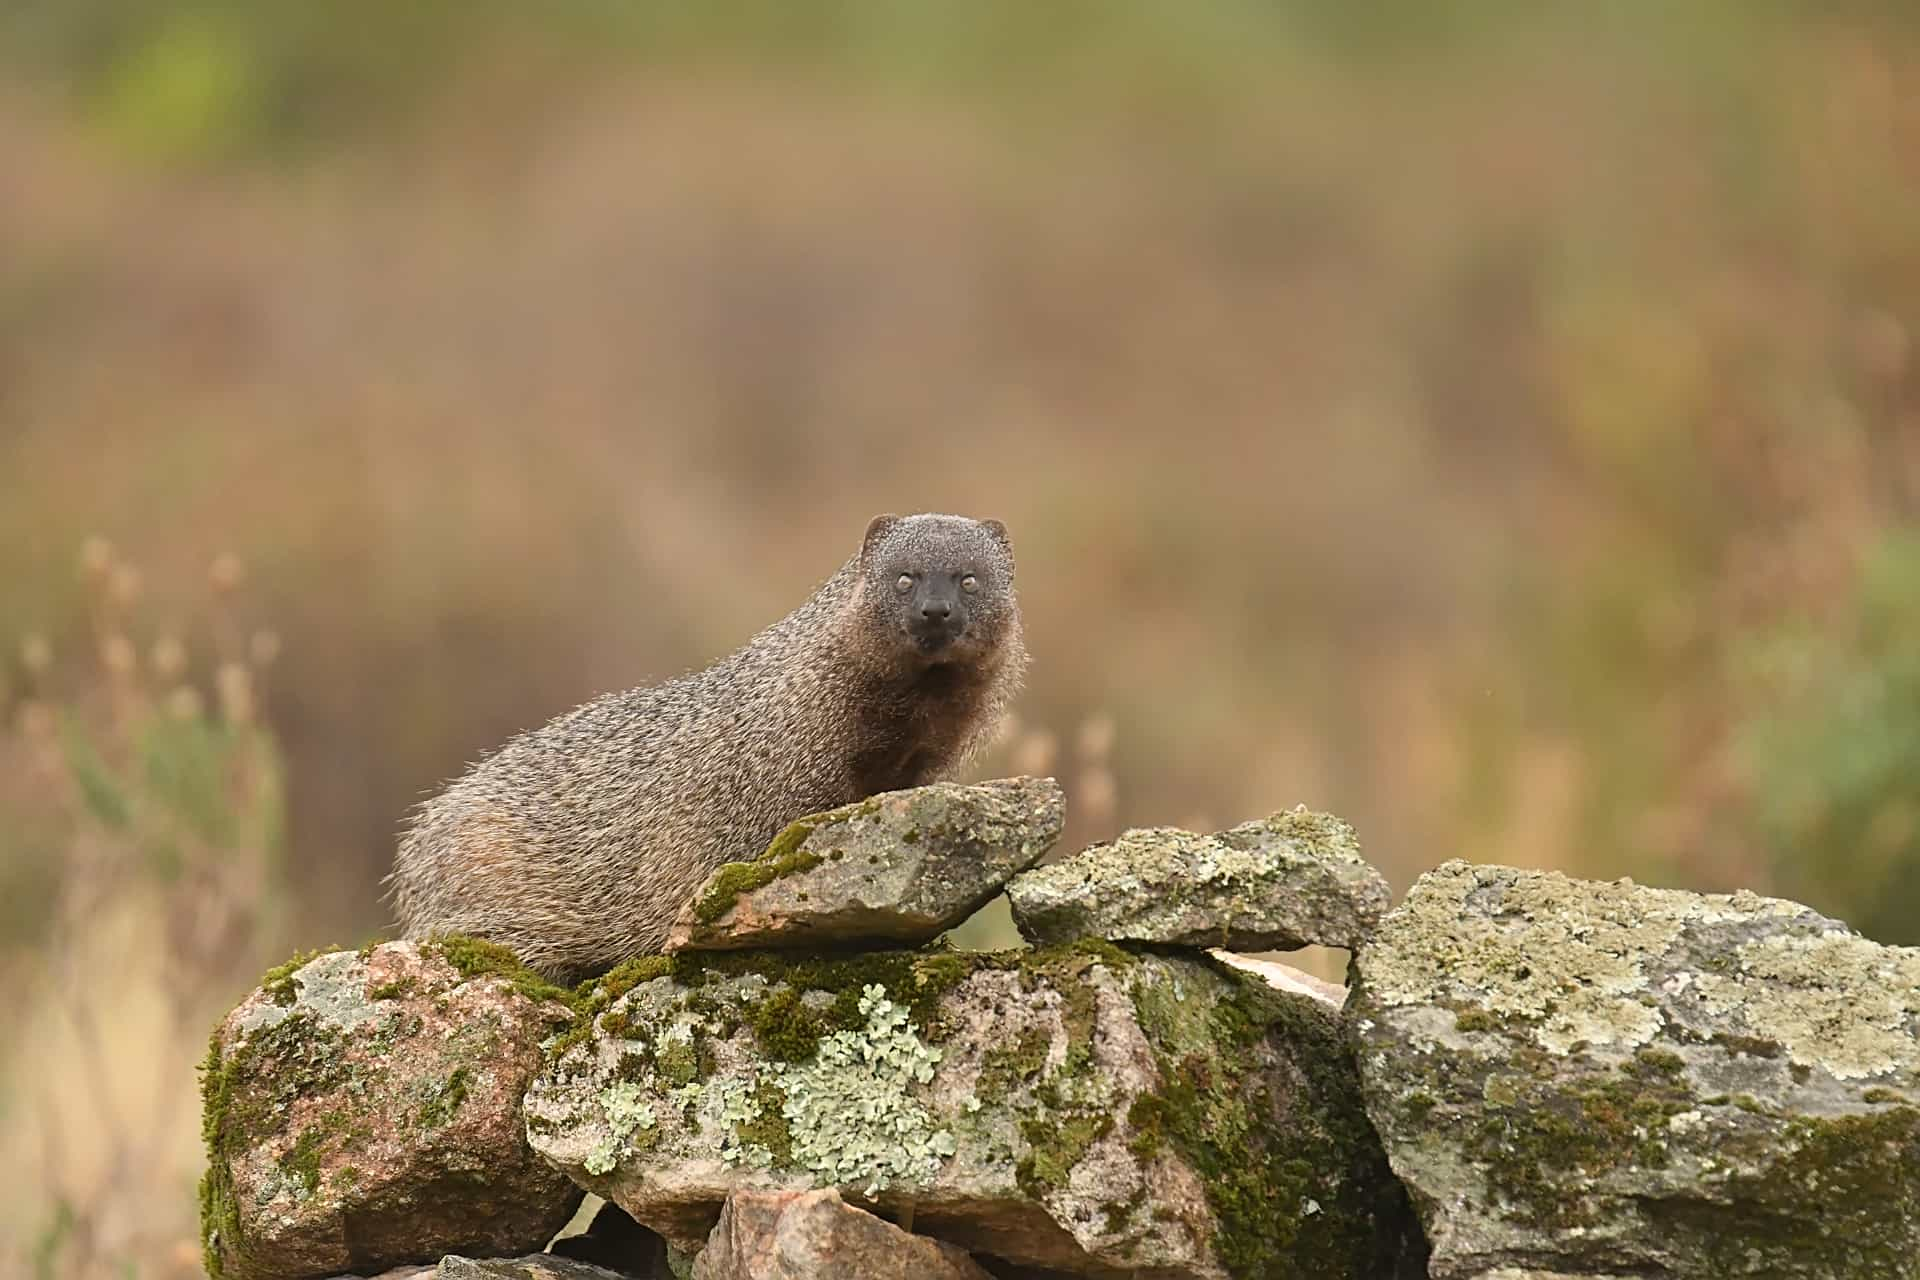 An Egyptian Mongoose stares into the hide – photographed in the same hides & locations used for the NaturesLens Winter Wildlife of Calera Photography Holiday